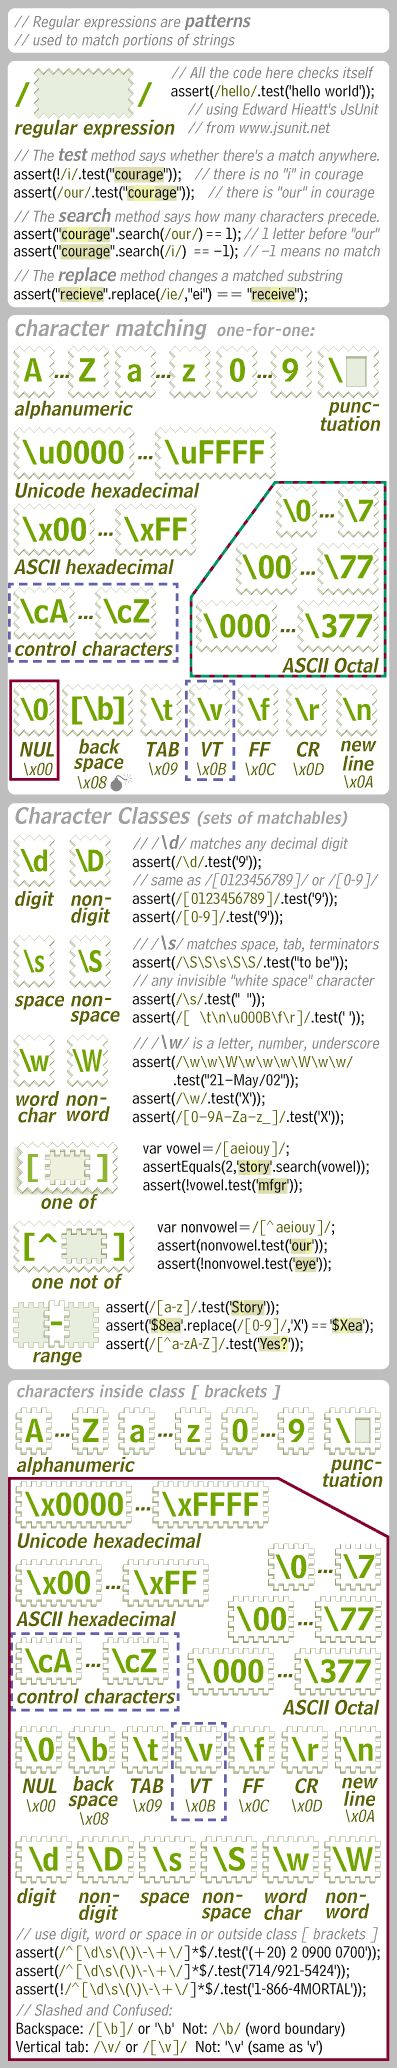 Regular Expressions (column 1 from a page of the JavaScript Card)